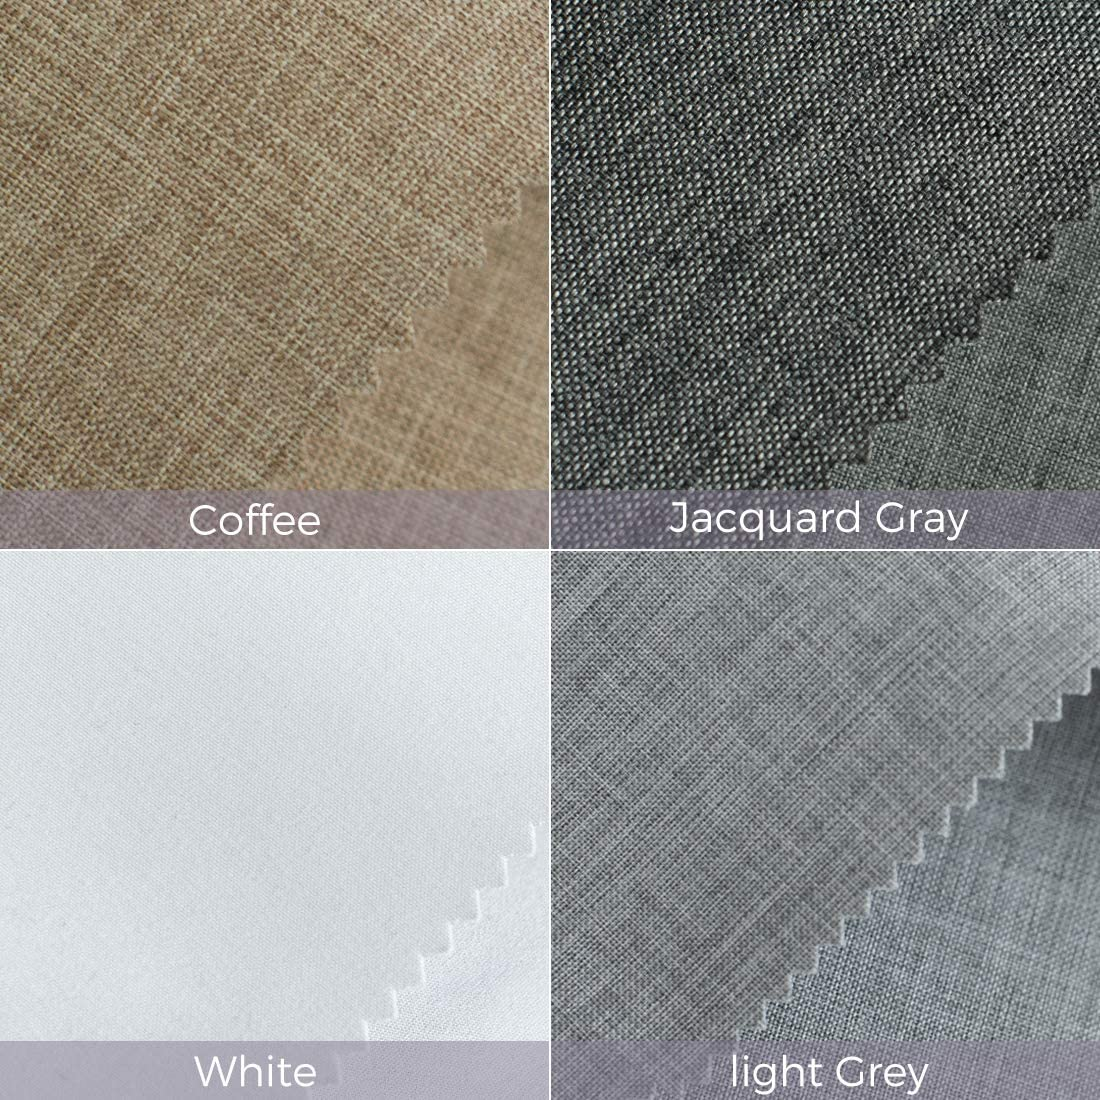 Graywind Roller Shades /& Blinds /& Curtains Fabric Samples 100/% Blackout Shade